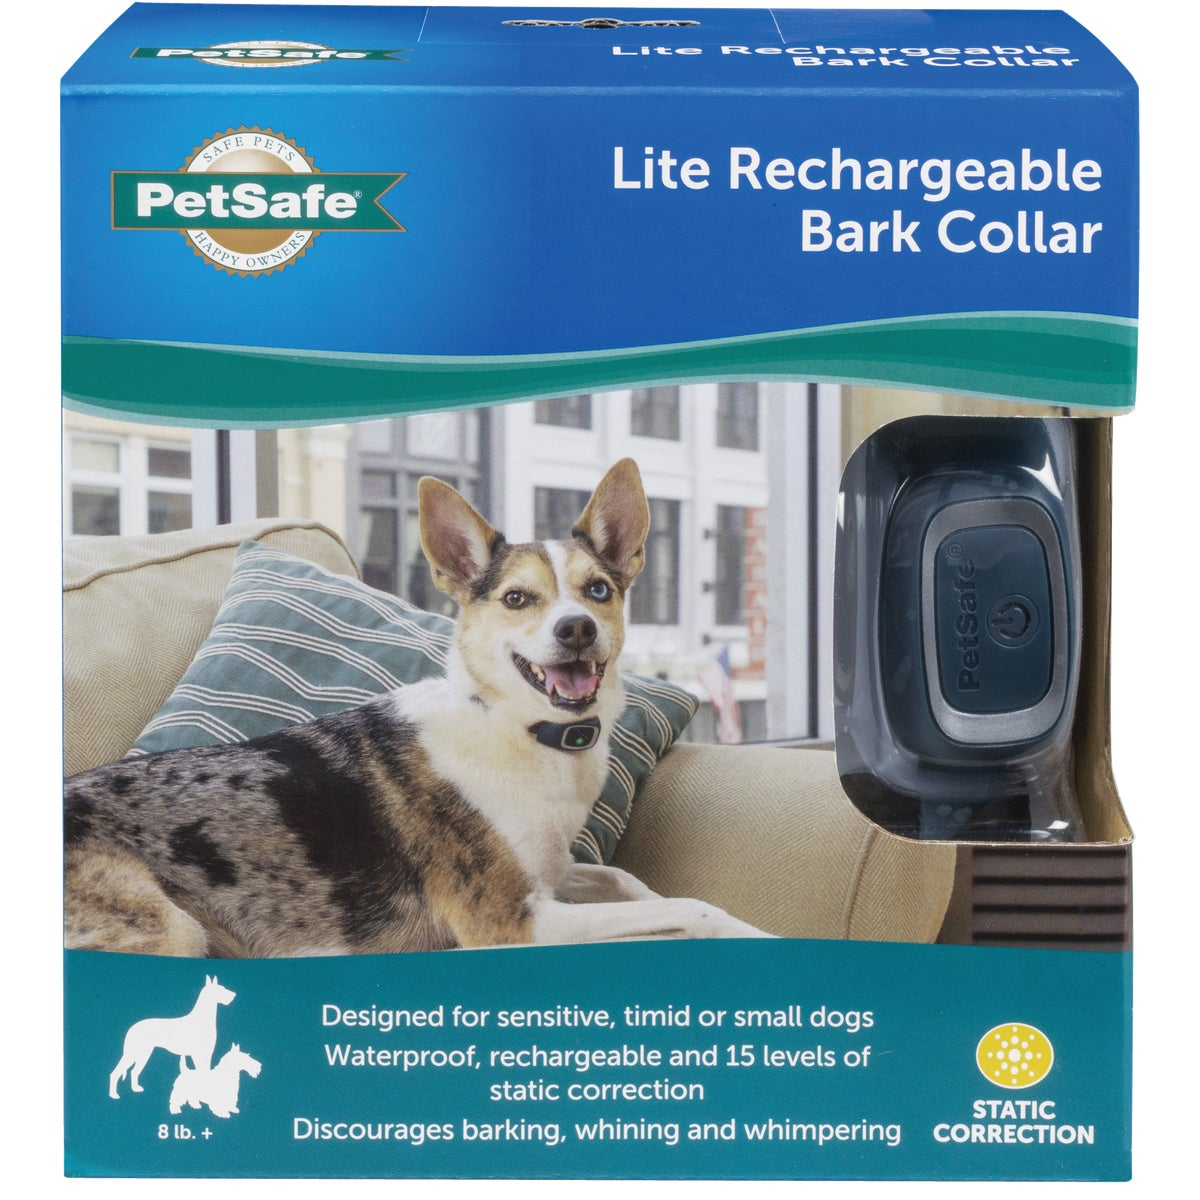 DLX SML DOG NOBRK COLLAR